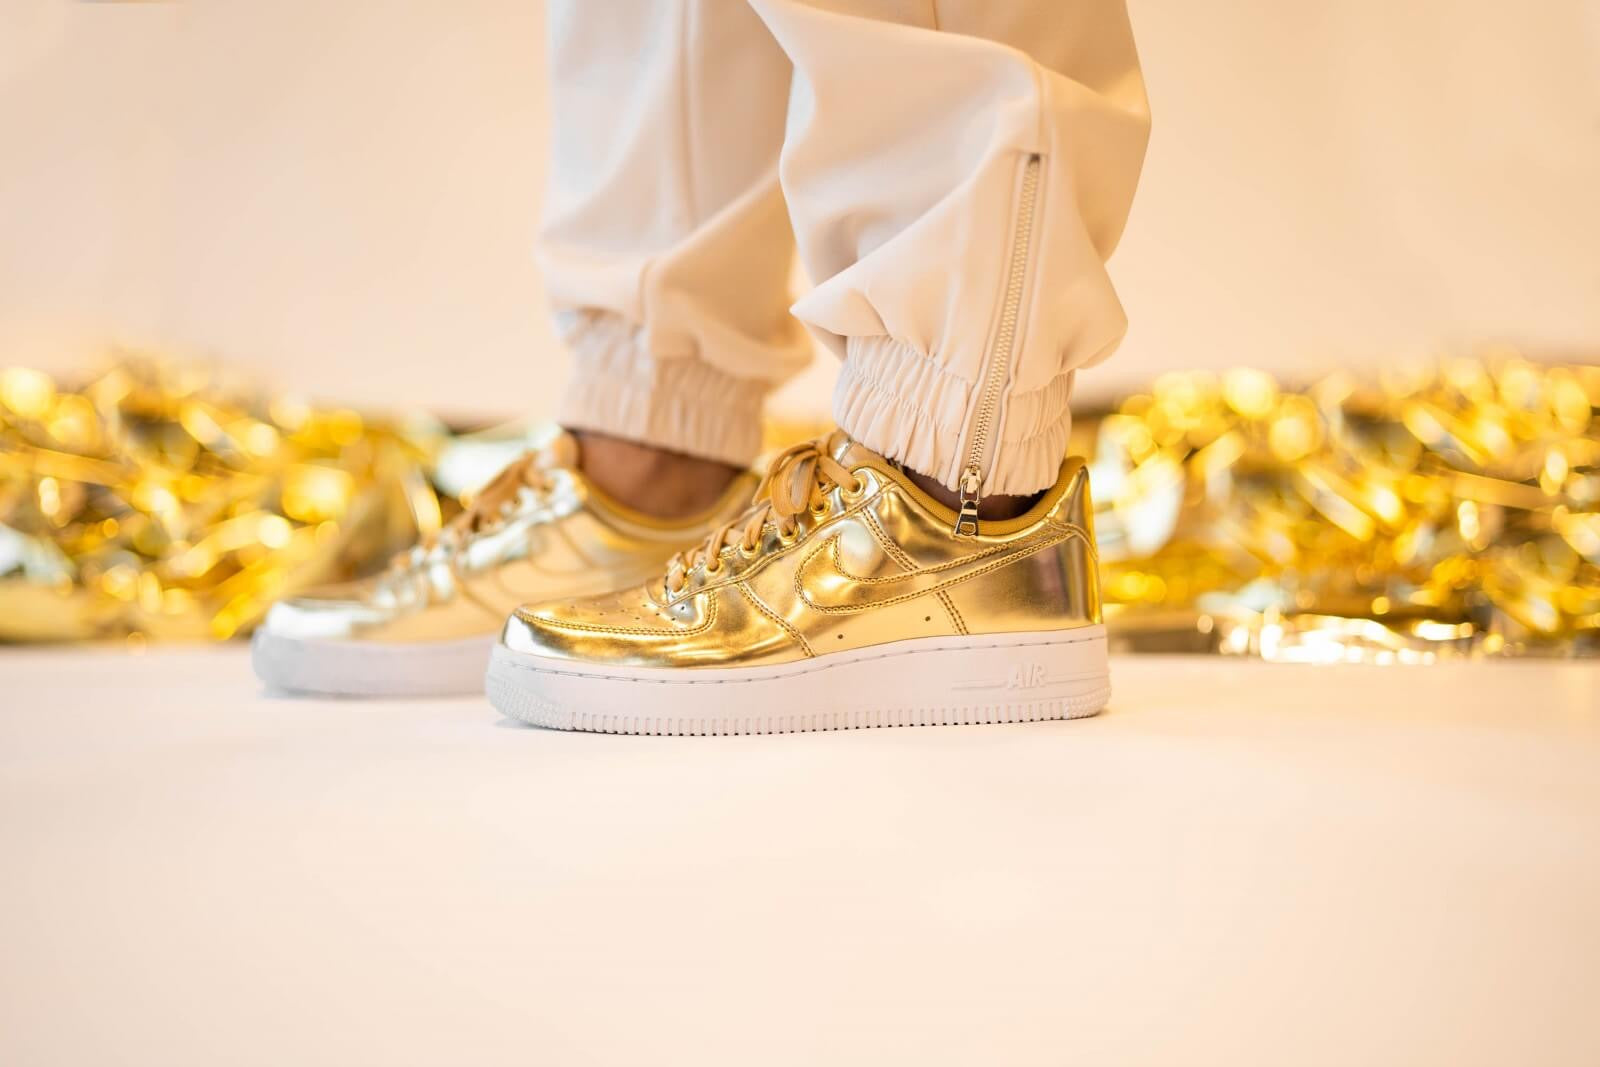 Nike WMNS Nike Air Force 1 SP - Metallic Gold/Club Gold/White #CQ6566-700-Preorder Item-Navy Selected Shop